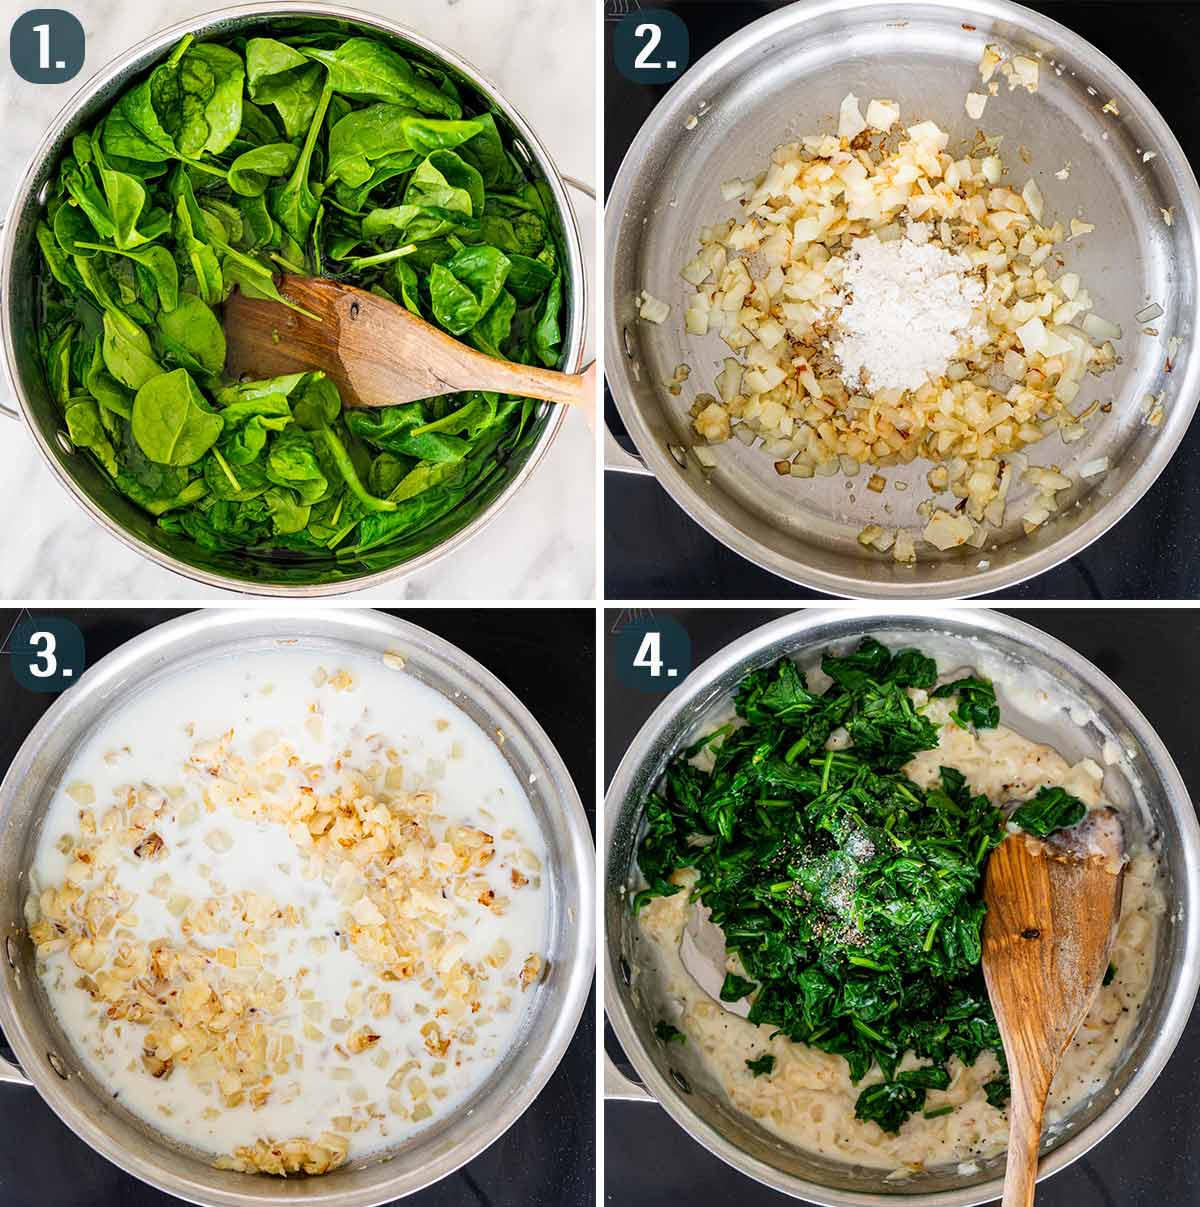 process shots showing how to make creamed spinach.